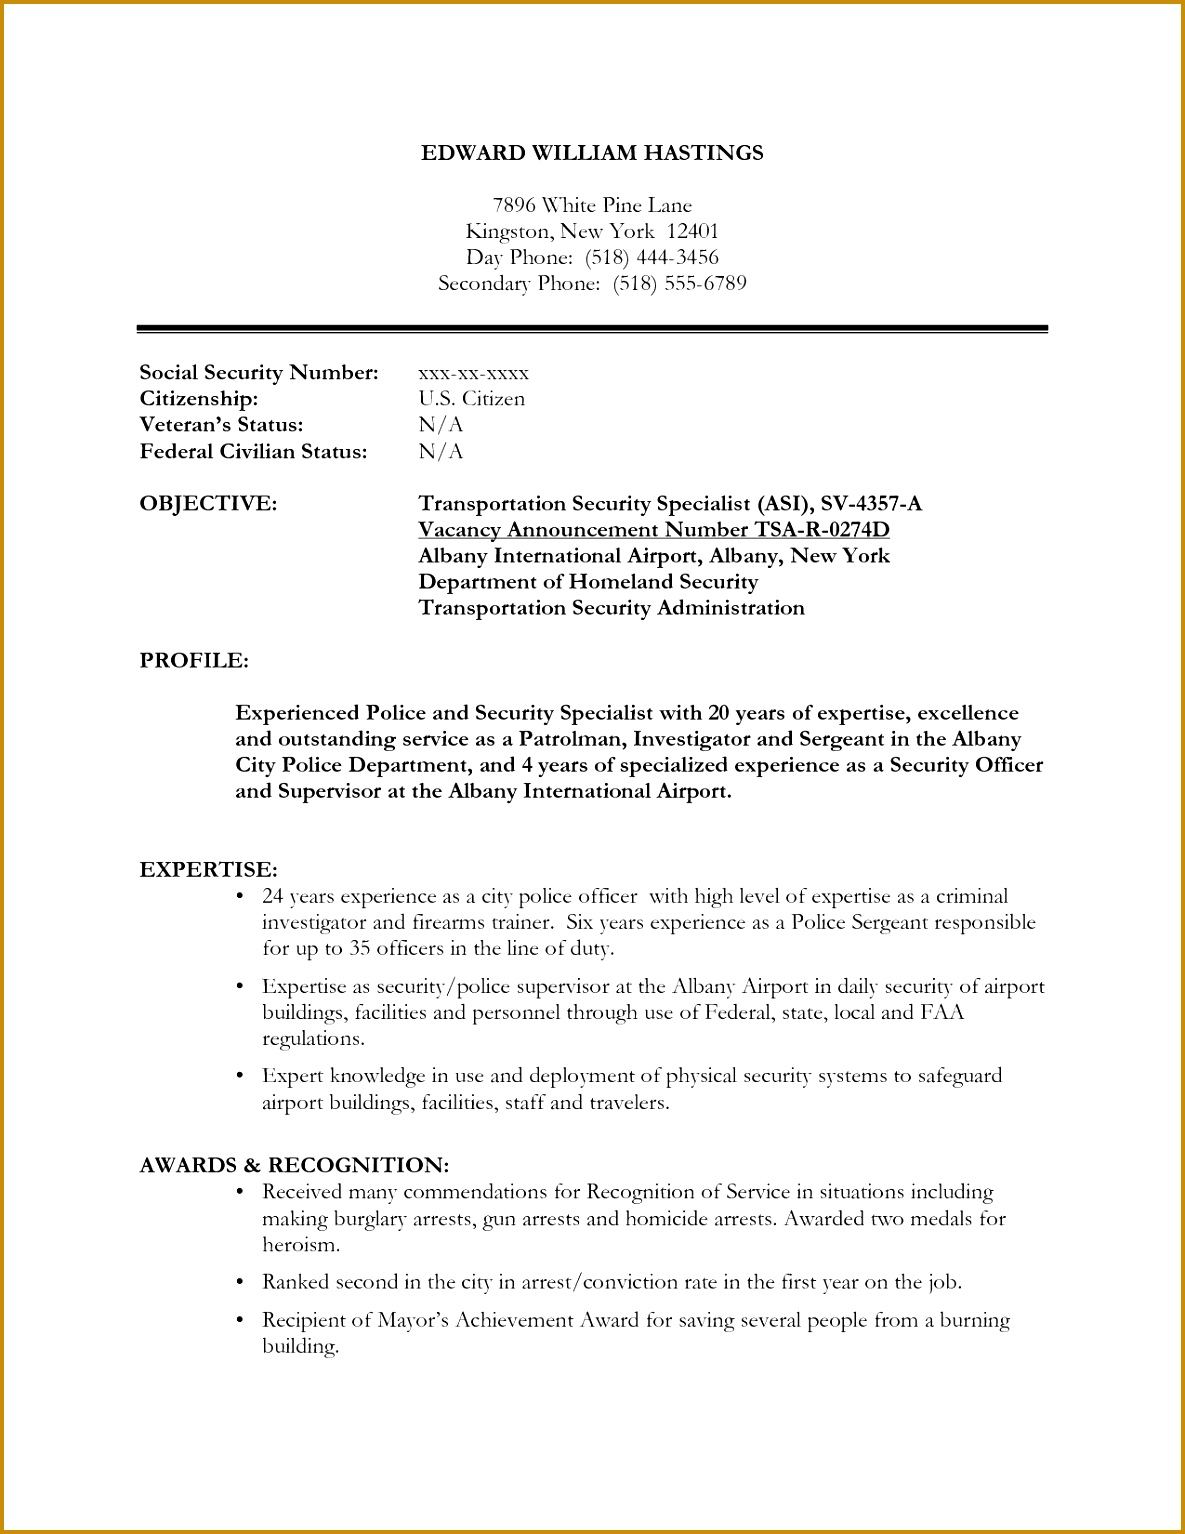 Cover Letter for Job Application Luxury Application for the Post Security Guard Security ficer Job 15341185